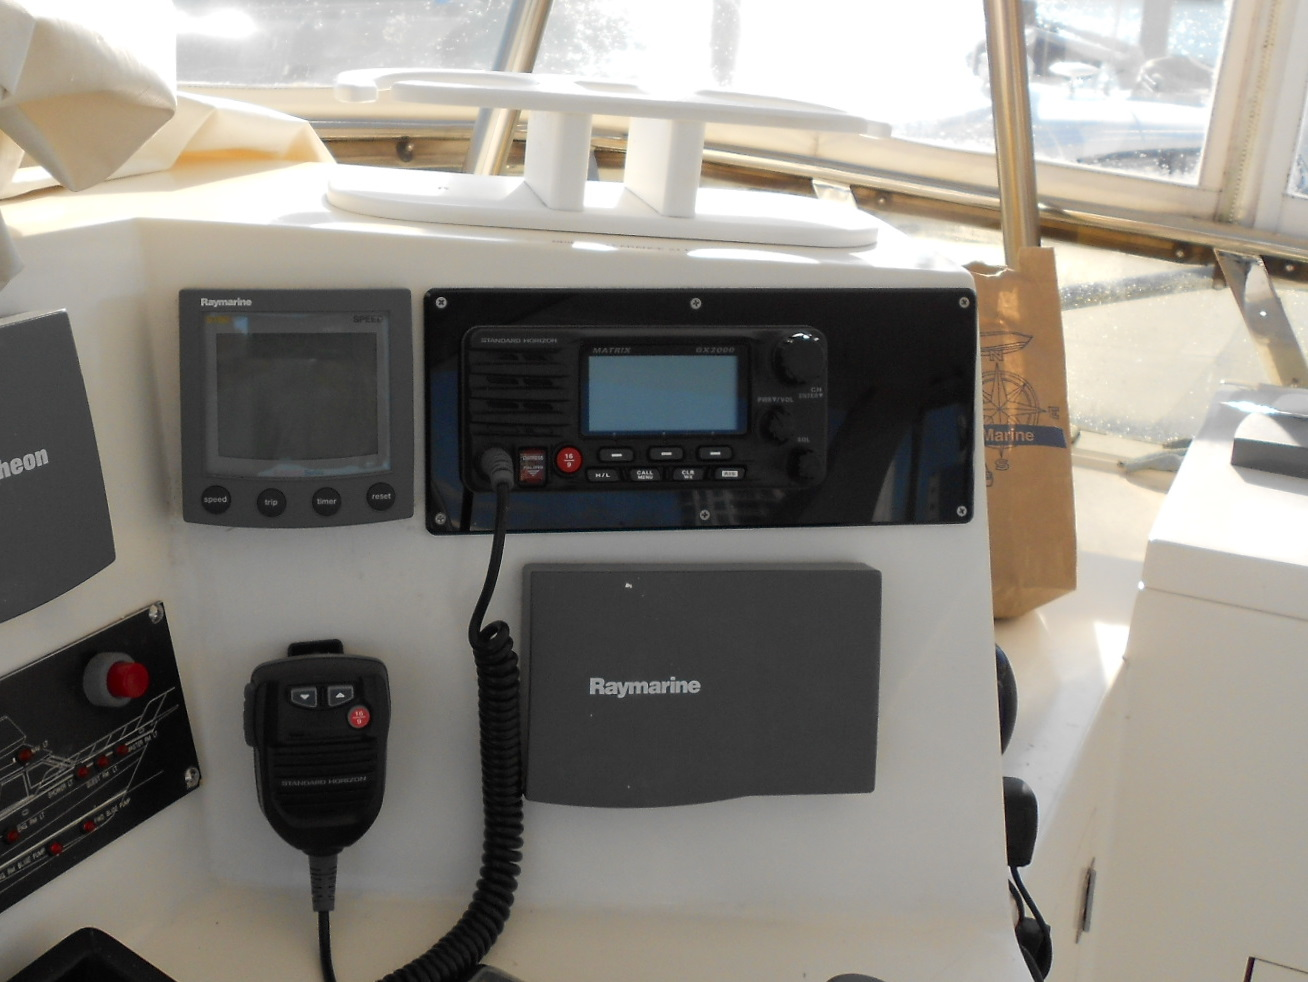 The Marine Installers Rant Hole In None Wiring Lowrance To Vhf Radio I Pick Up Phone And Call Standard Horizon Just As Tech Comes On Line Realize What Is Going When Bought Had Called